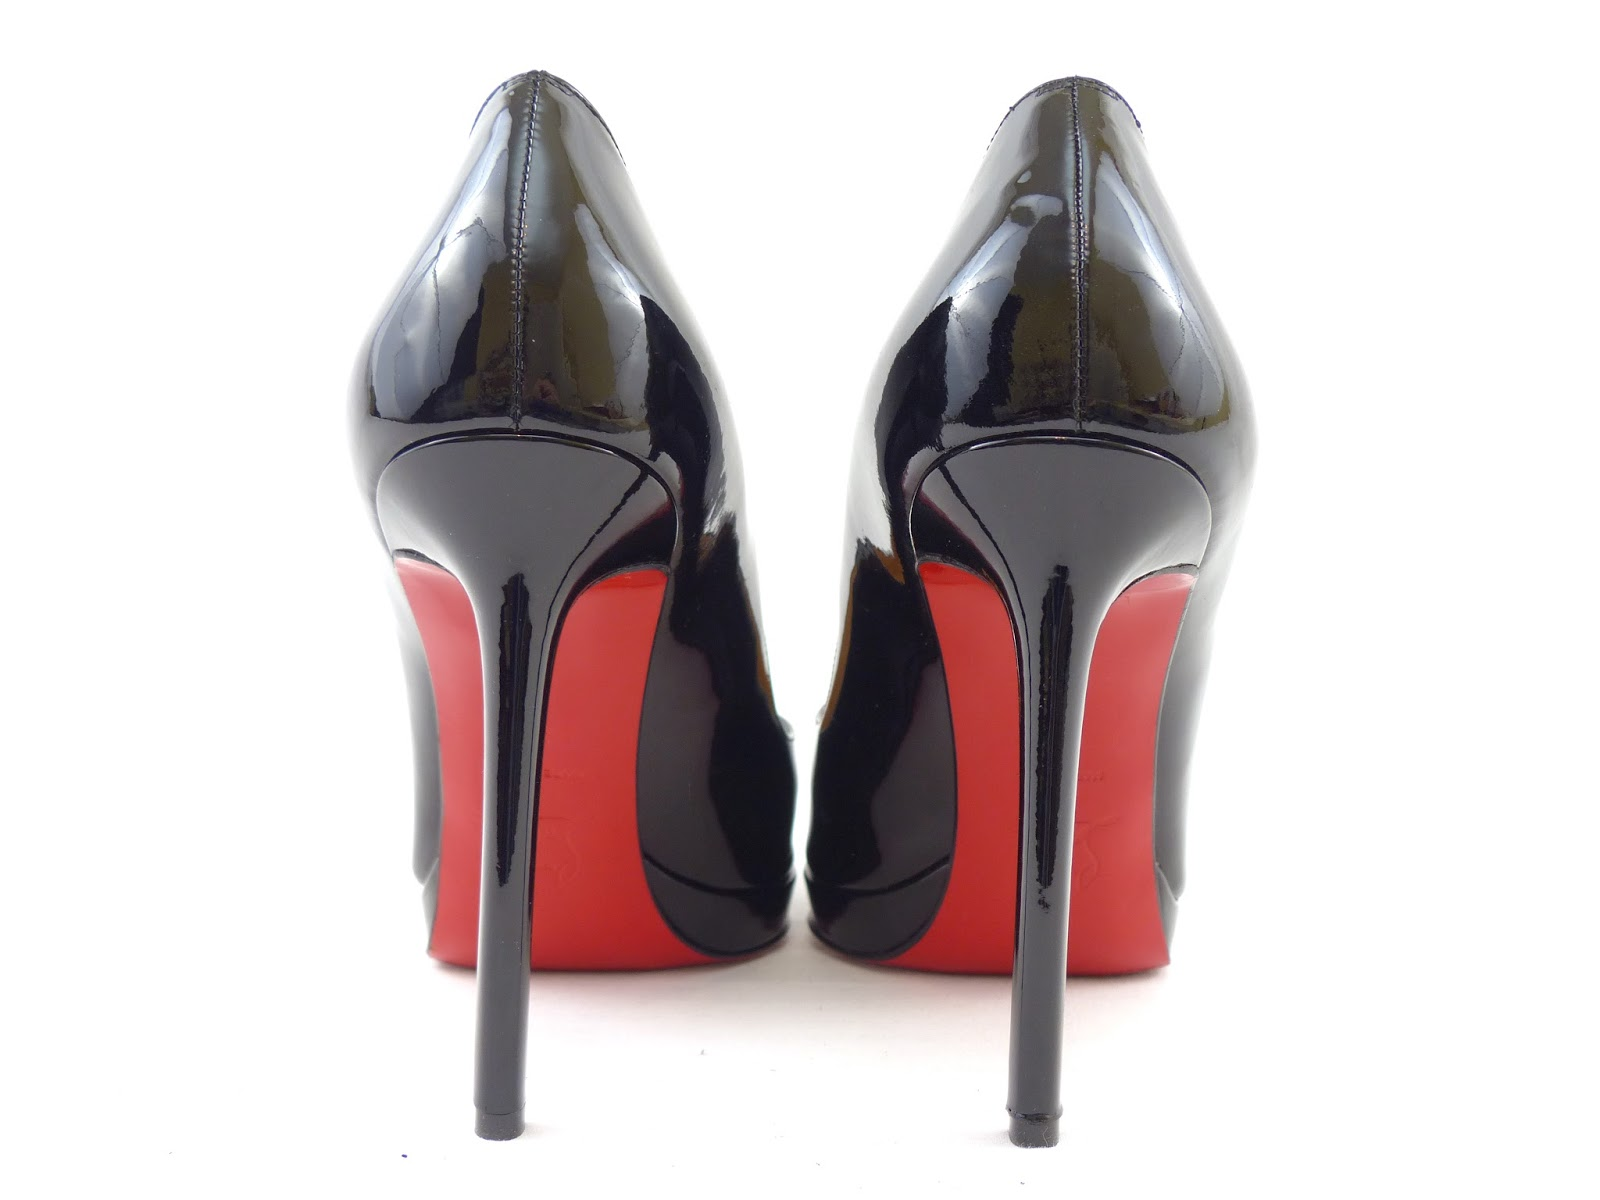 832d39913b59 (Above - Christian Louboutin heel stitching from an authentic pair of